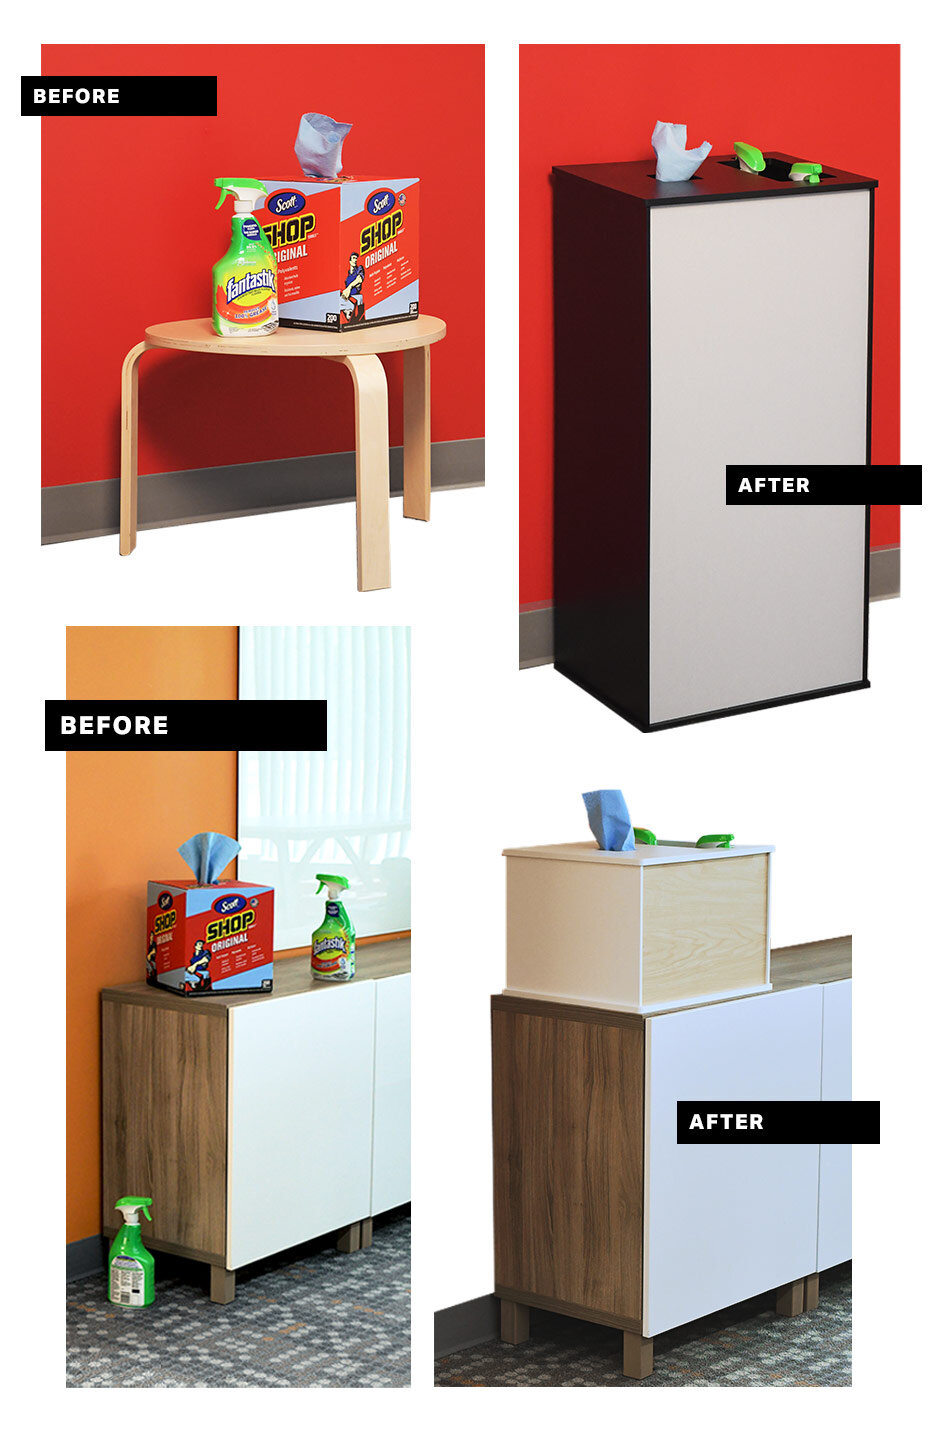 Before and Afters of Cleaning Stations by Takeform